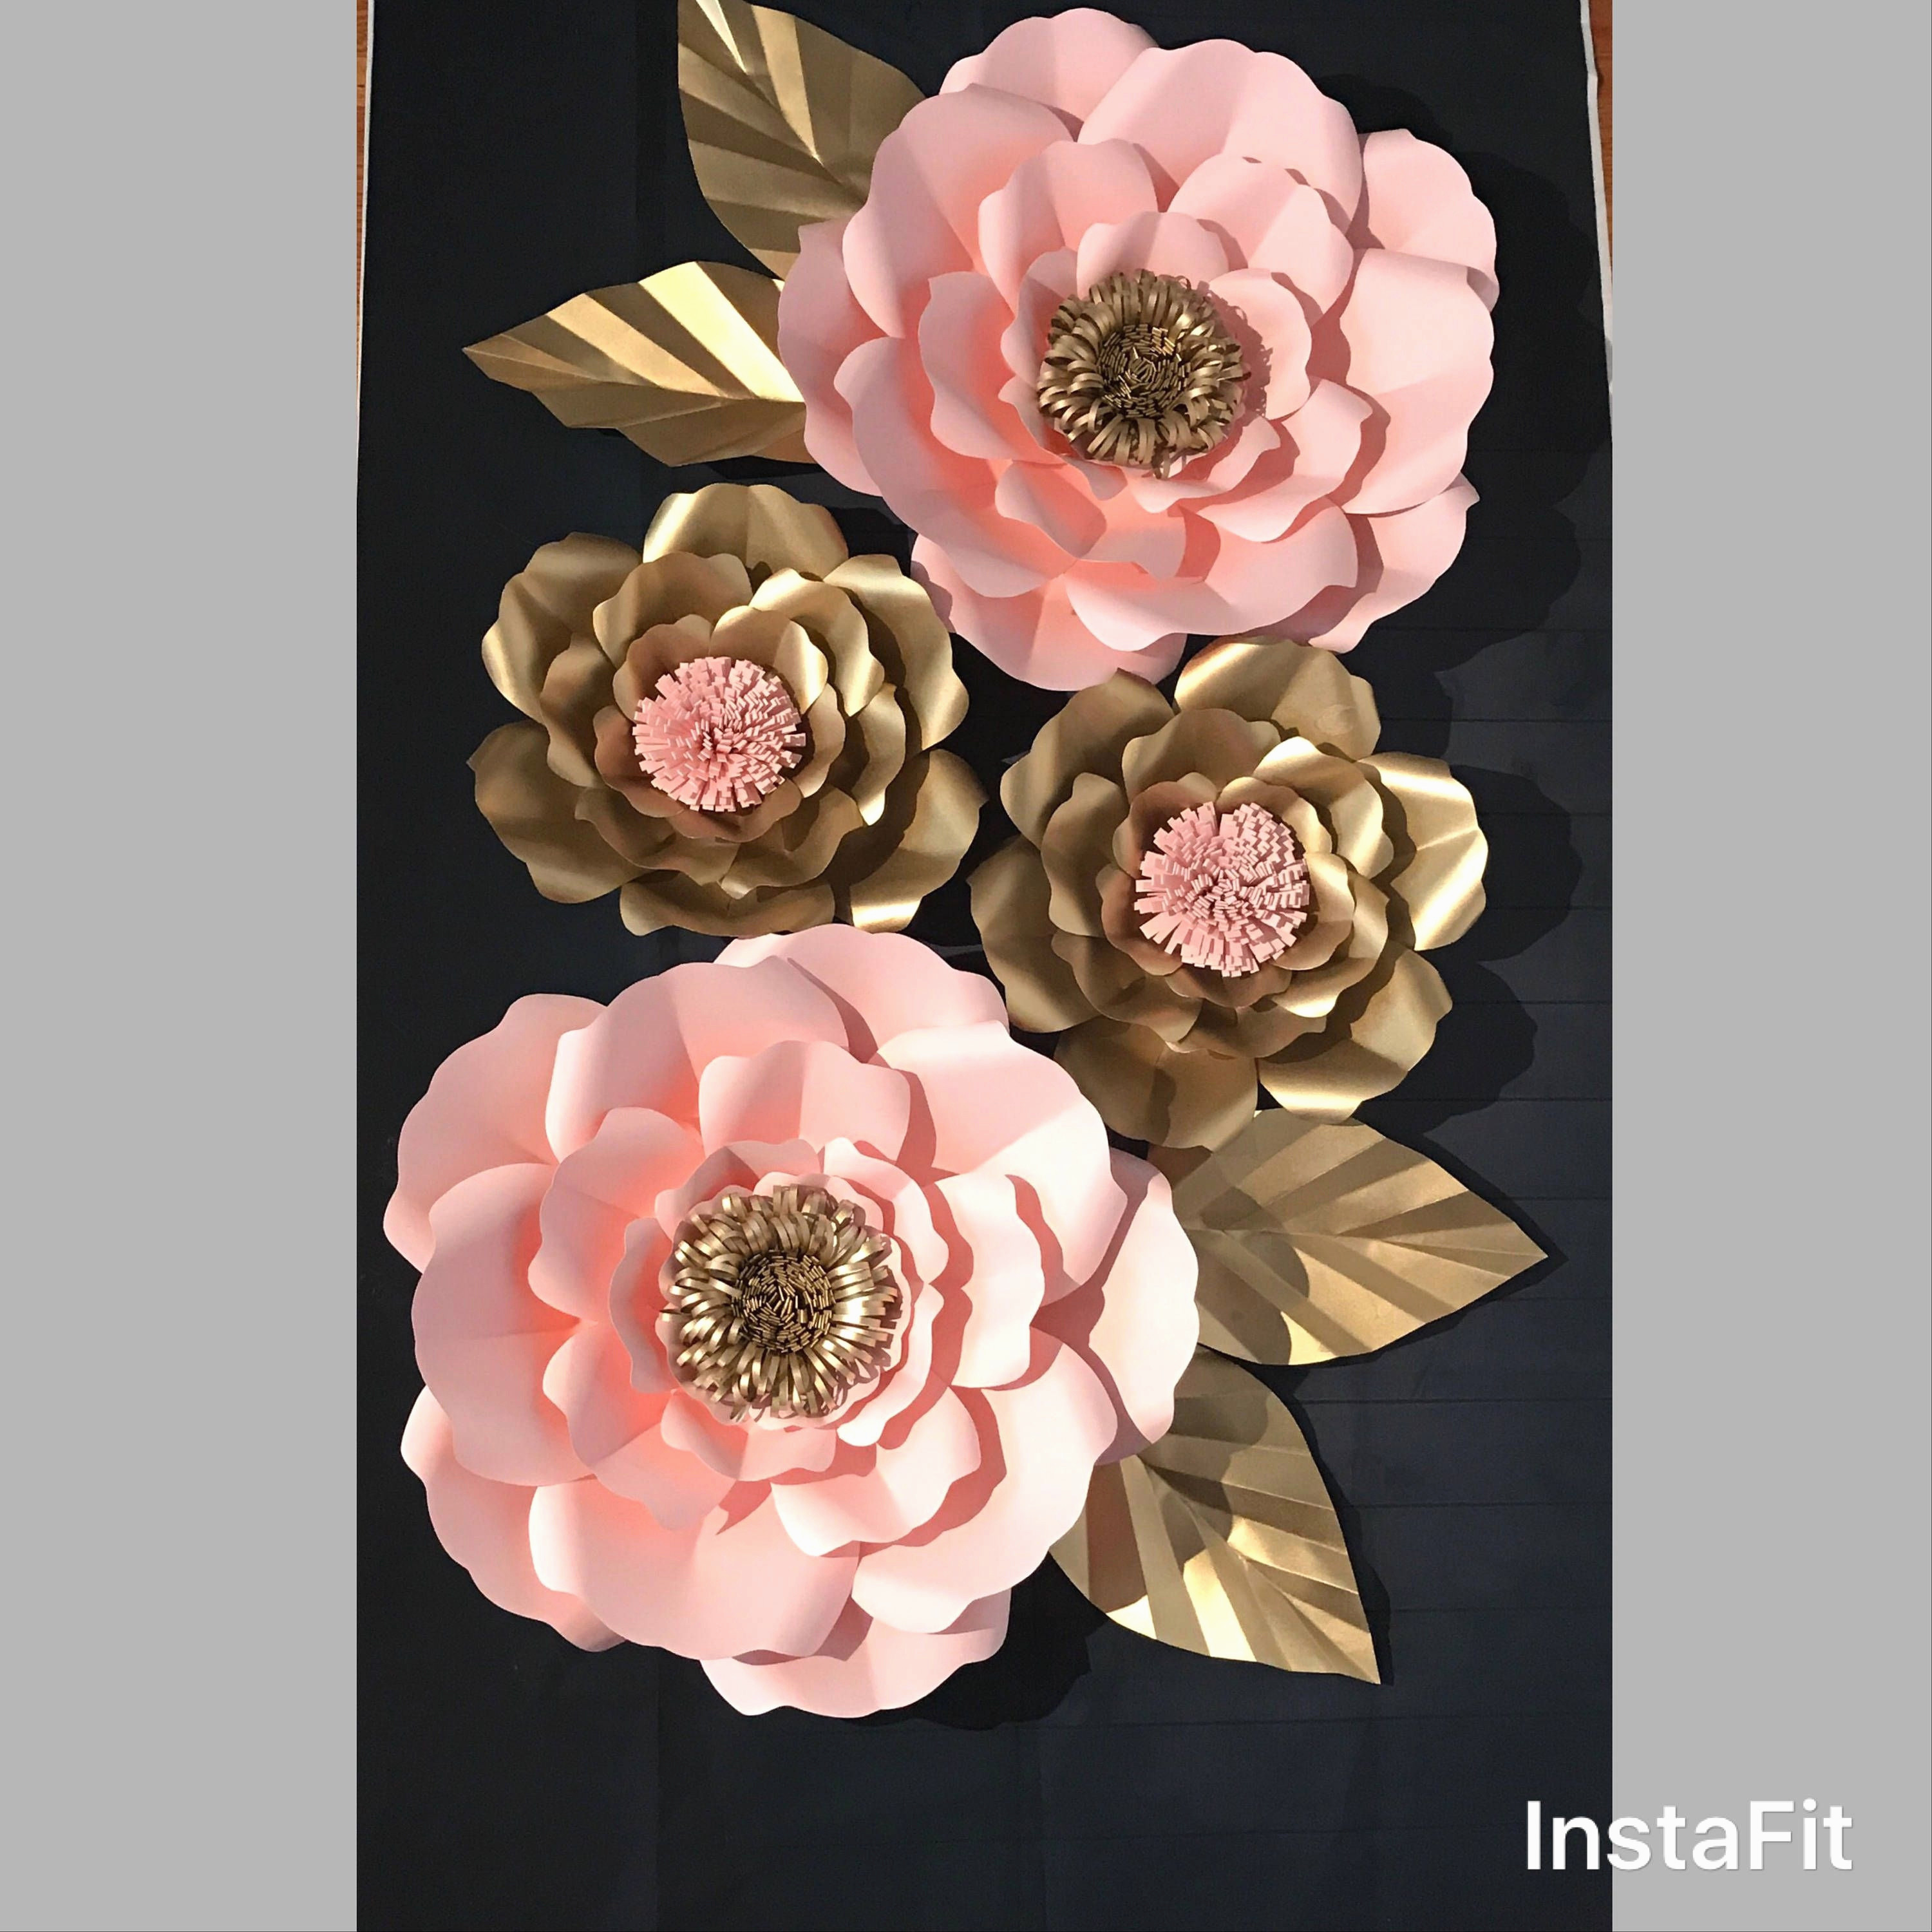 metal wall vase sconce of awesome h vases wall hanging flower vase newspaper i 0d scheme wall pertaining to awesome floral decor for home beautiful decor floral decor floral decor 0d of awesome h vases